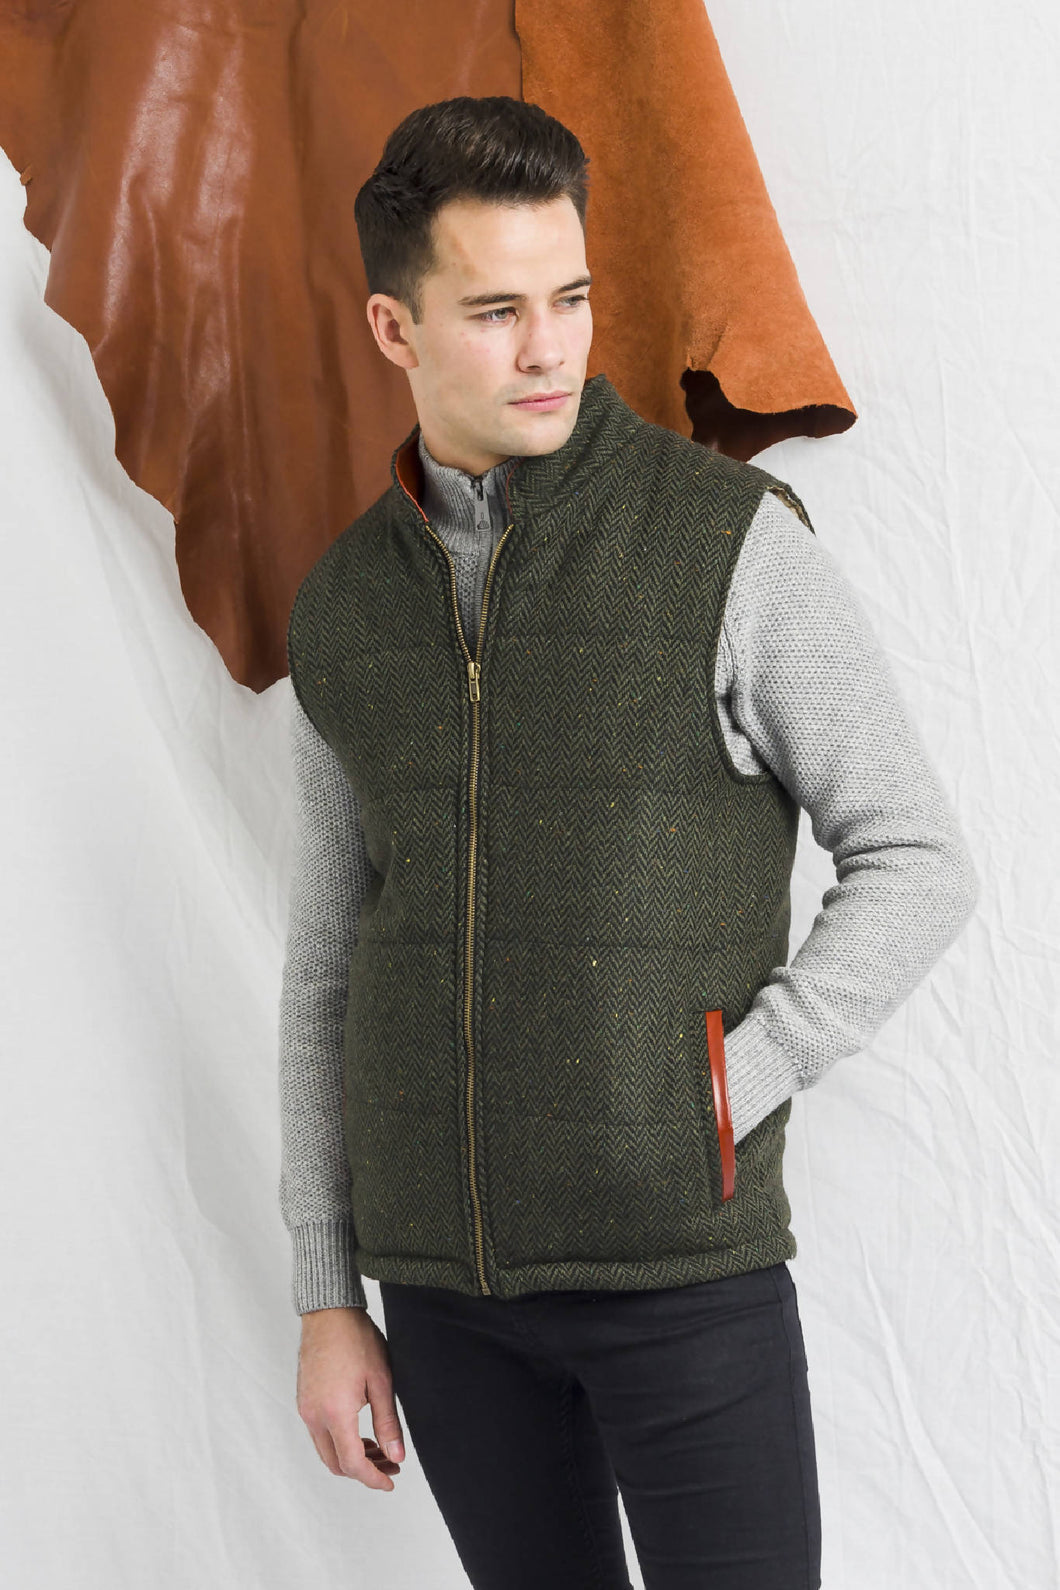 Men's Green Tweed Body Warmer and Gilet Trimmed with Leather